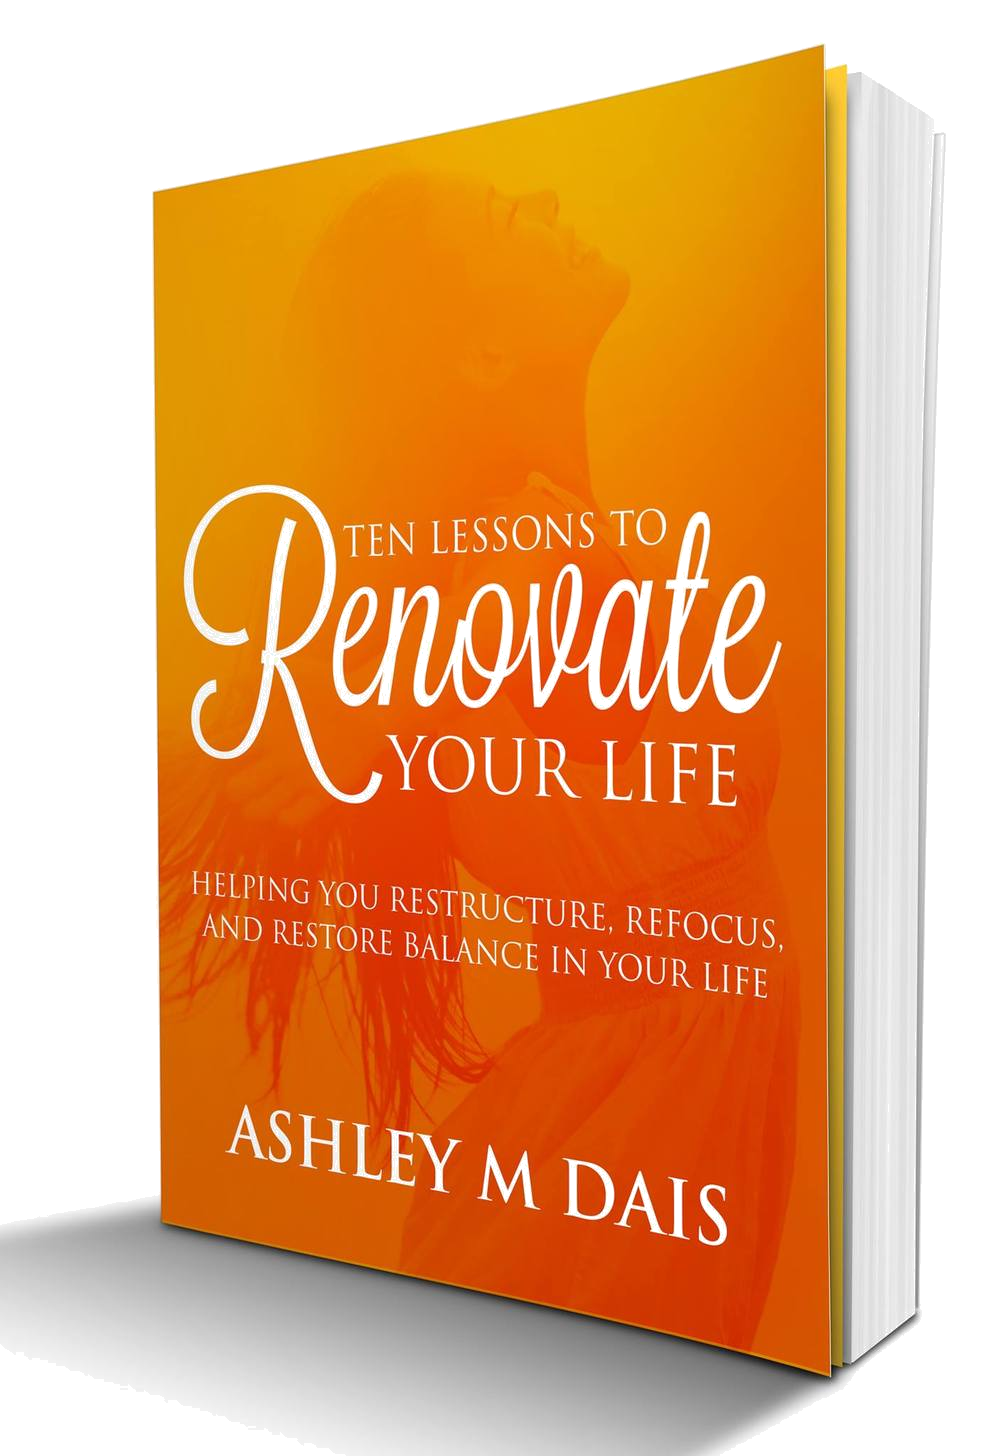 Renovate Your Life by Ashley M Dais